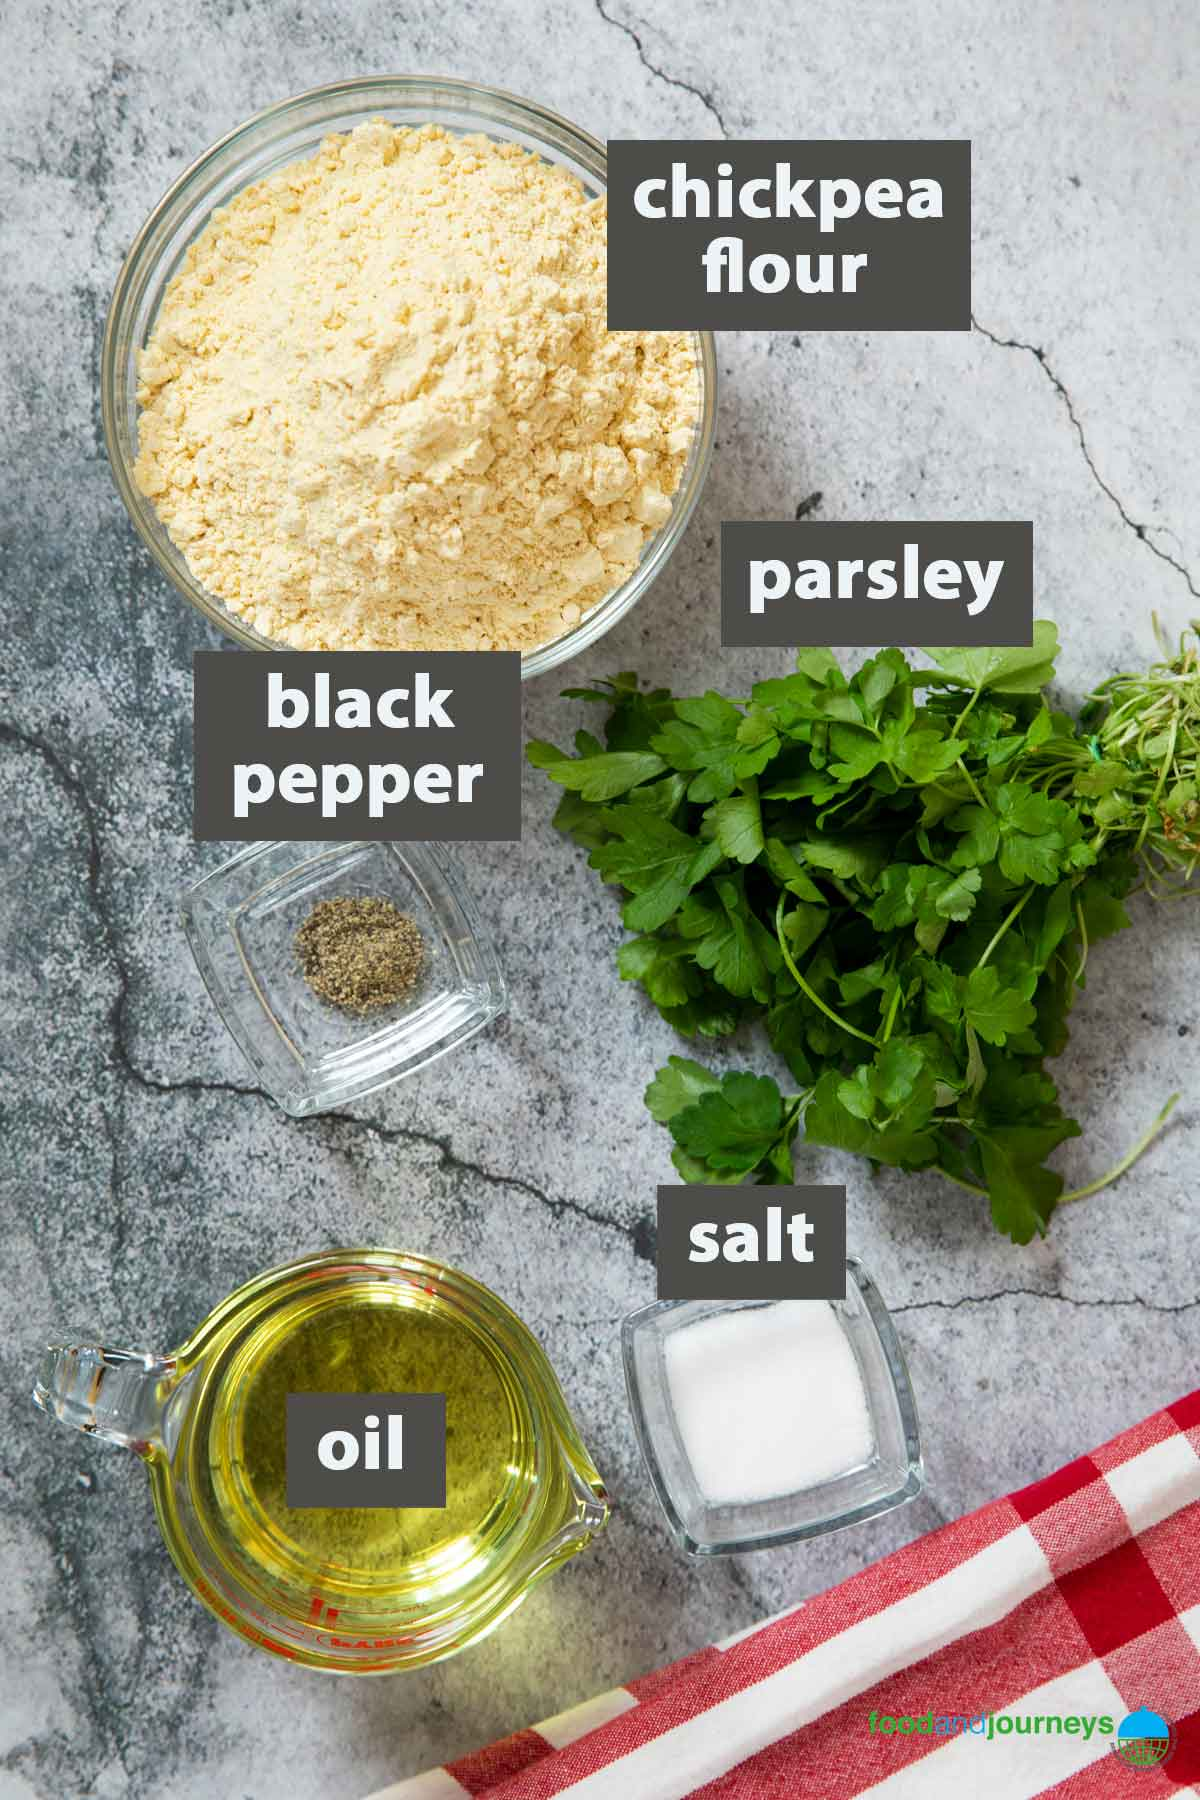 An image showing all the ingredients you need for making panelle.